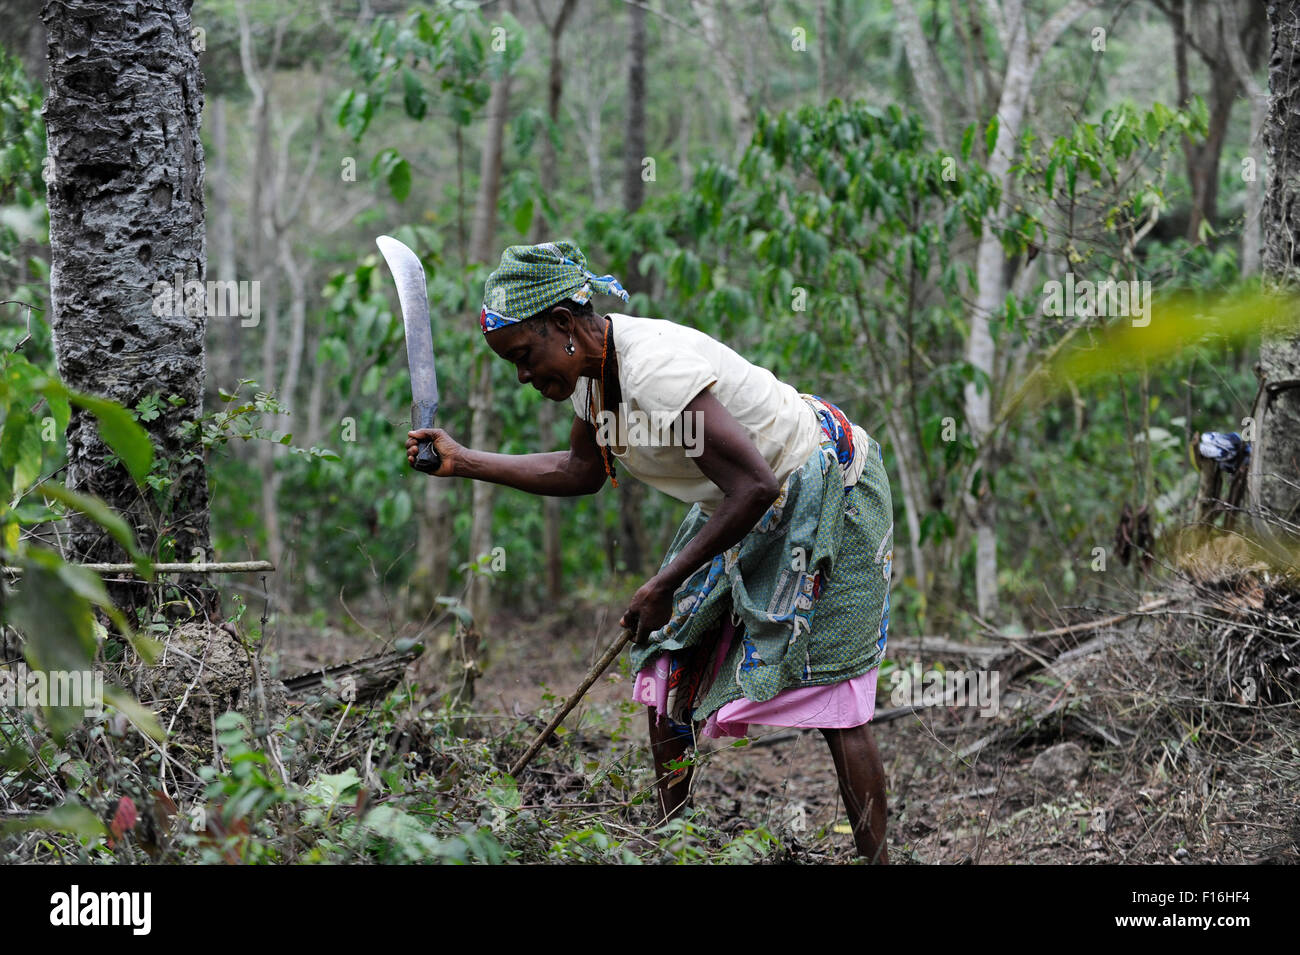 Africa ANGOLA Calulo, coffee fazienda of  Fernando Sobral, woman cleans the coffee farm from weeds - Stock Image